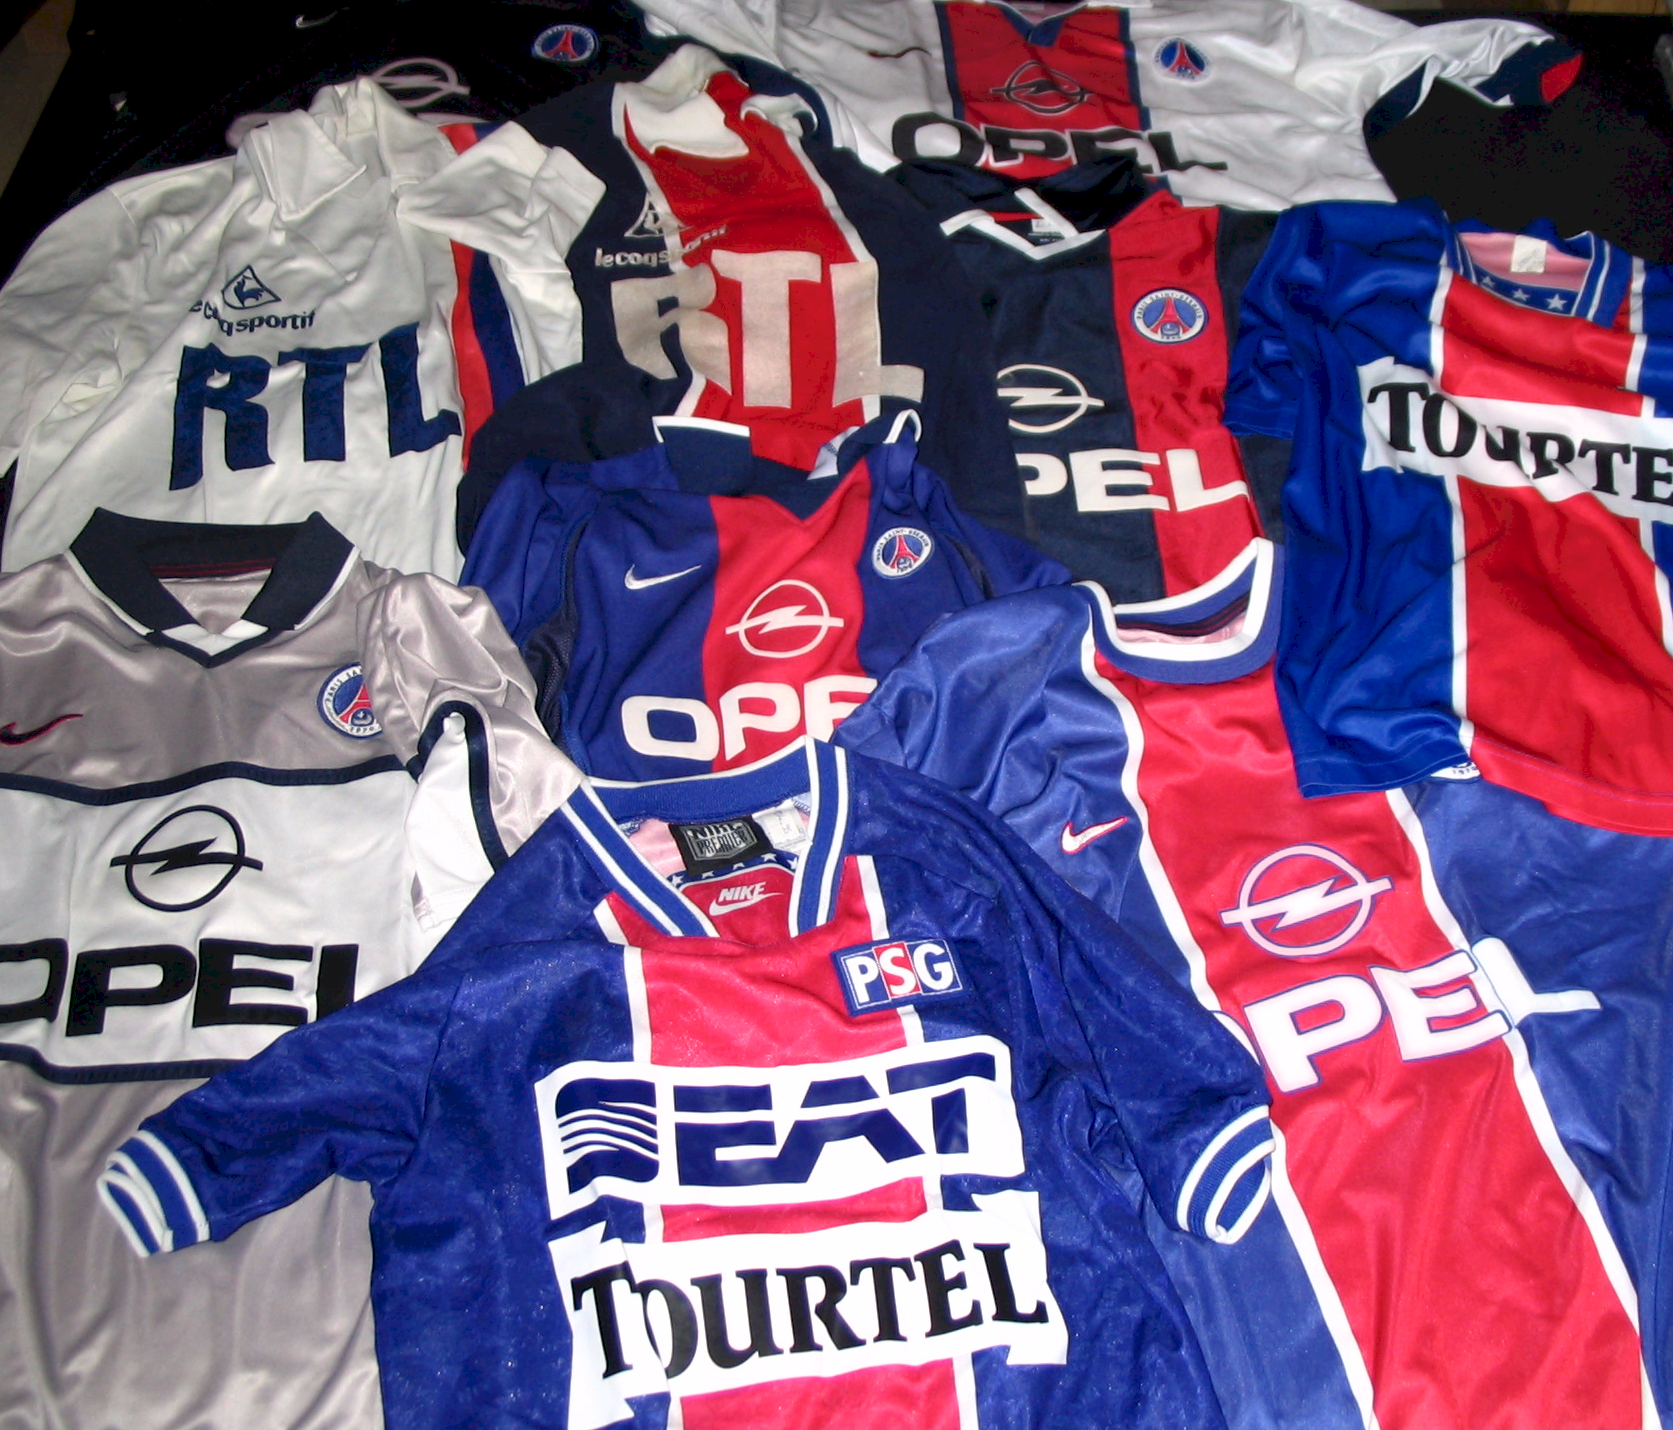 File:Maillots du PSG.png - Wikipedia, the free encyclopedia